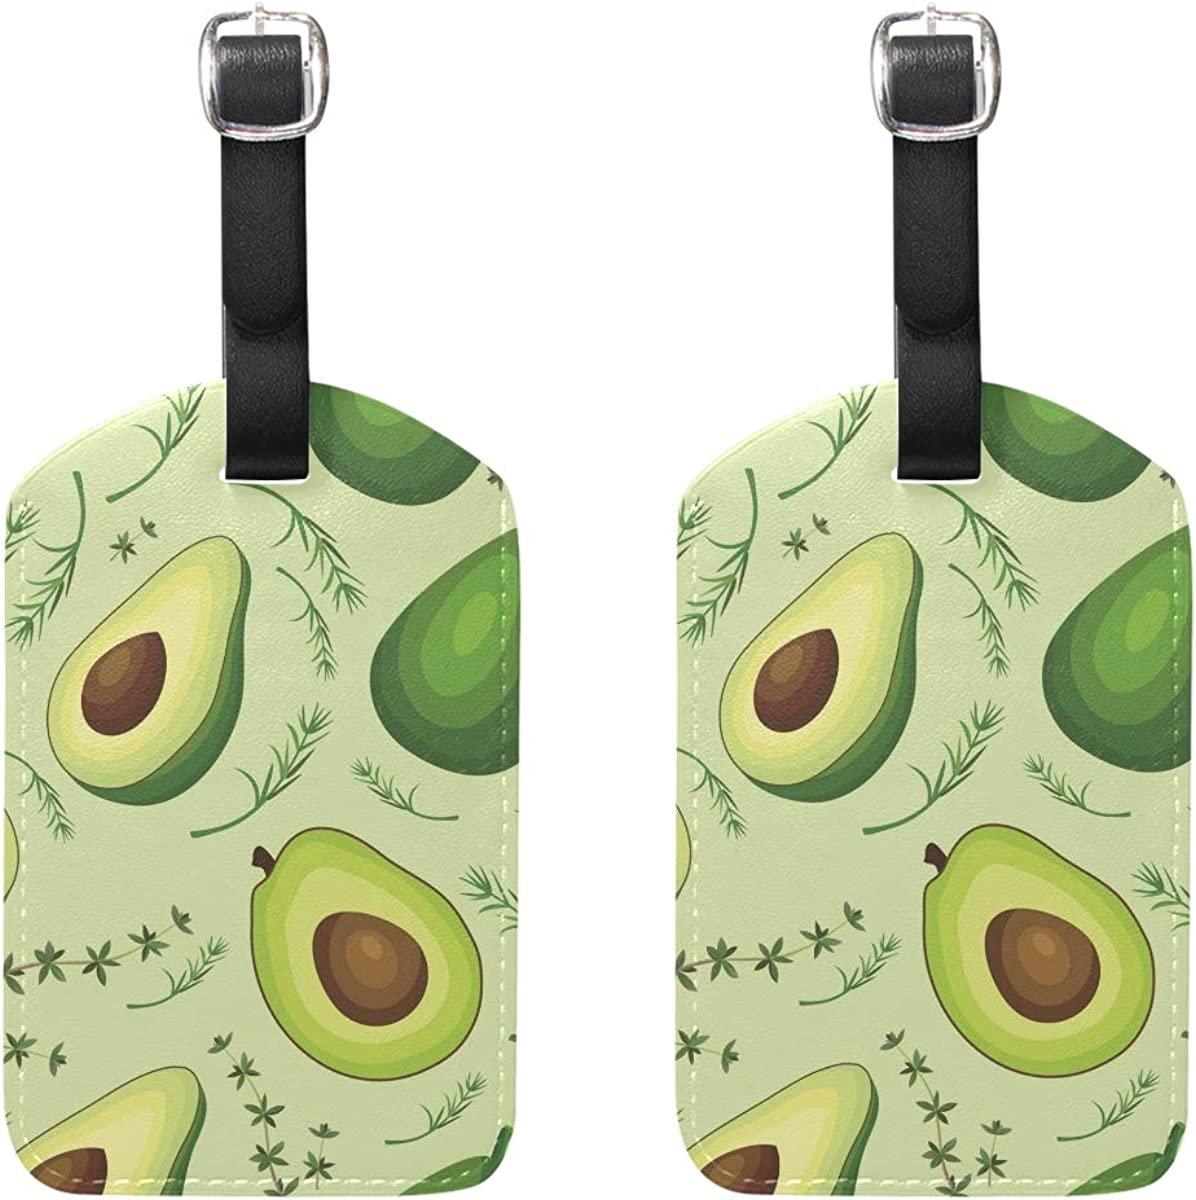 Kiwi Fruit Leather Luggage Tags Suitcase Tag Travel Bag Labels With Privacy Cover For Men Women 2 Pack 4 Pack